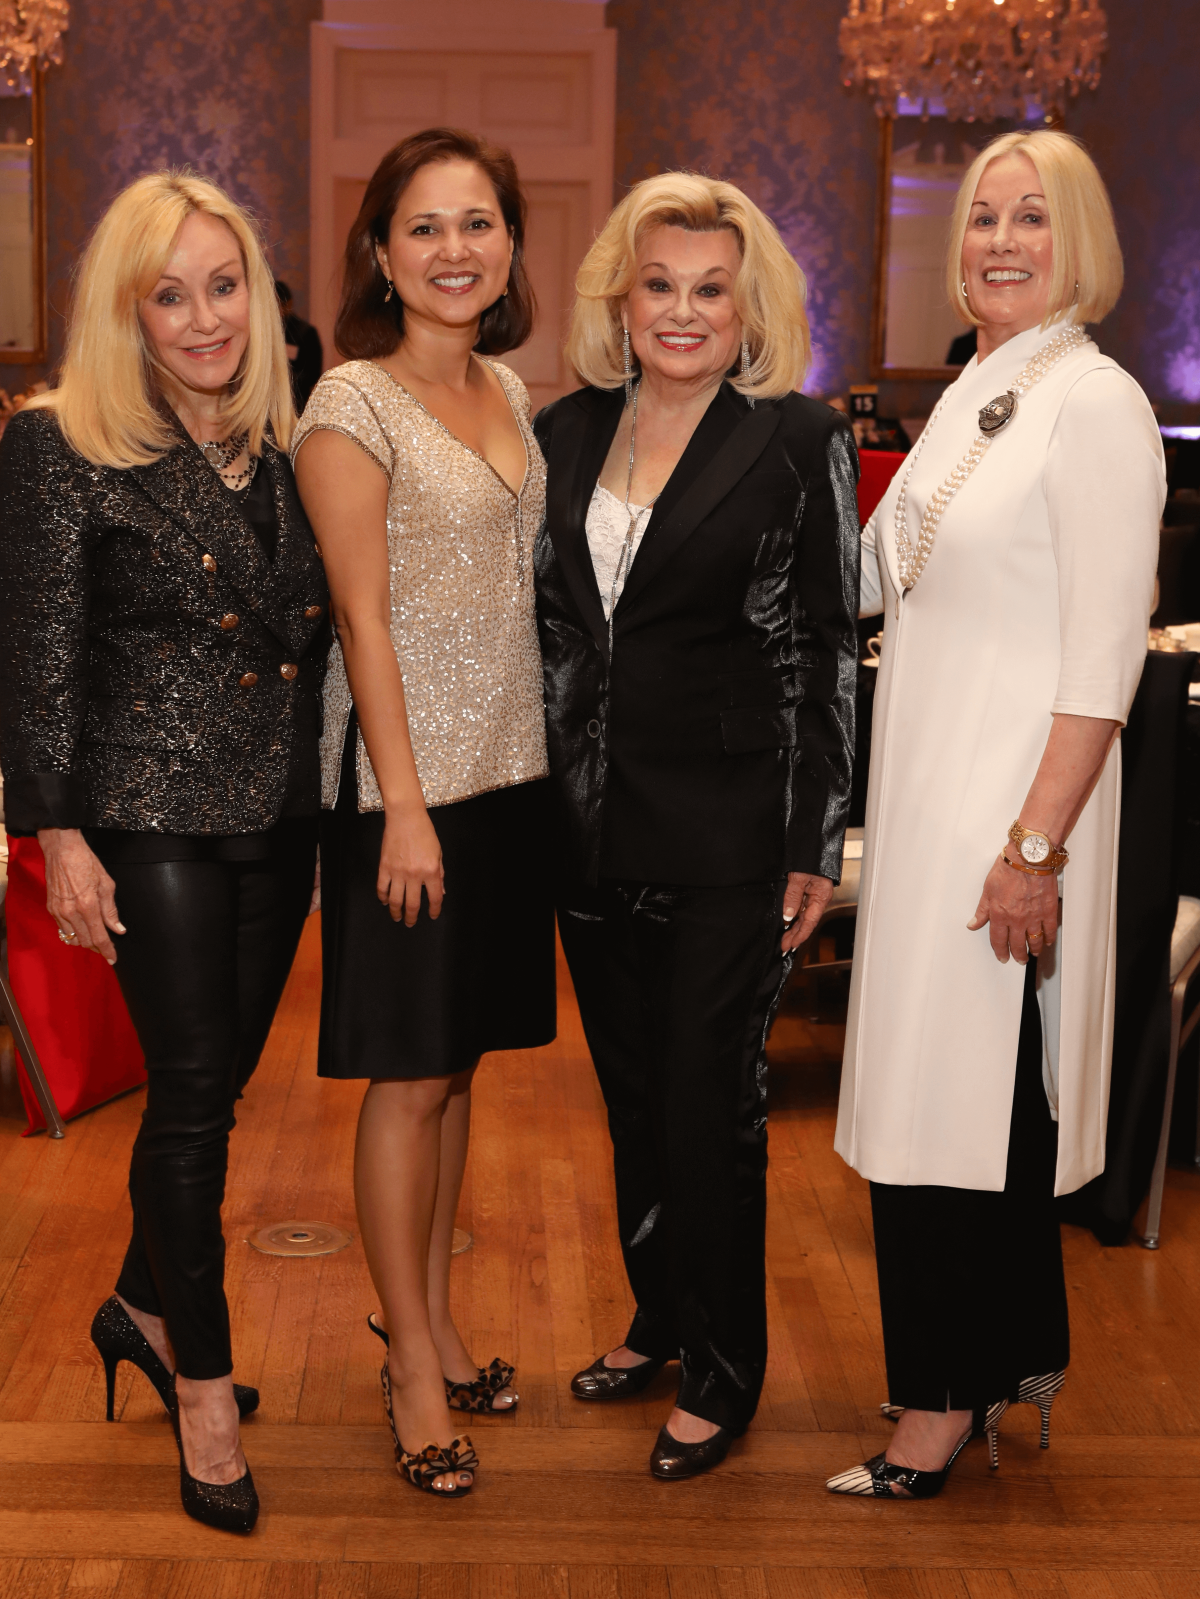 Houston, Barc Foundation's Barc On Broadway ball, Oct 2016, Judi McGee, Elizabeth Brock, Sidney Faust, Elsie Eckert